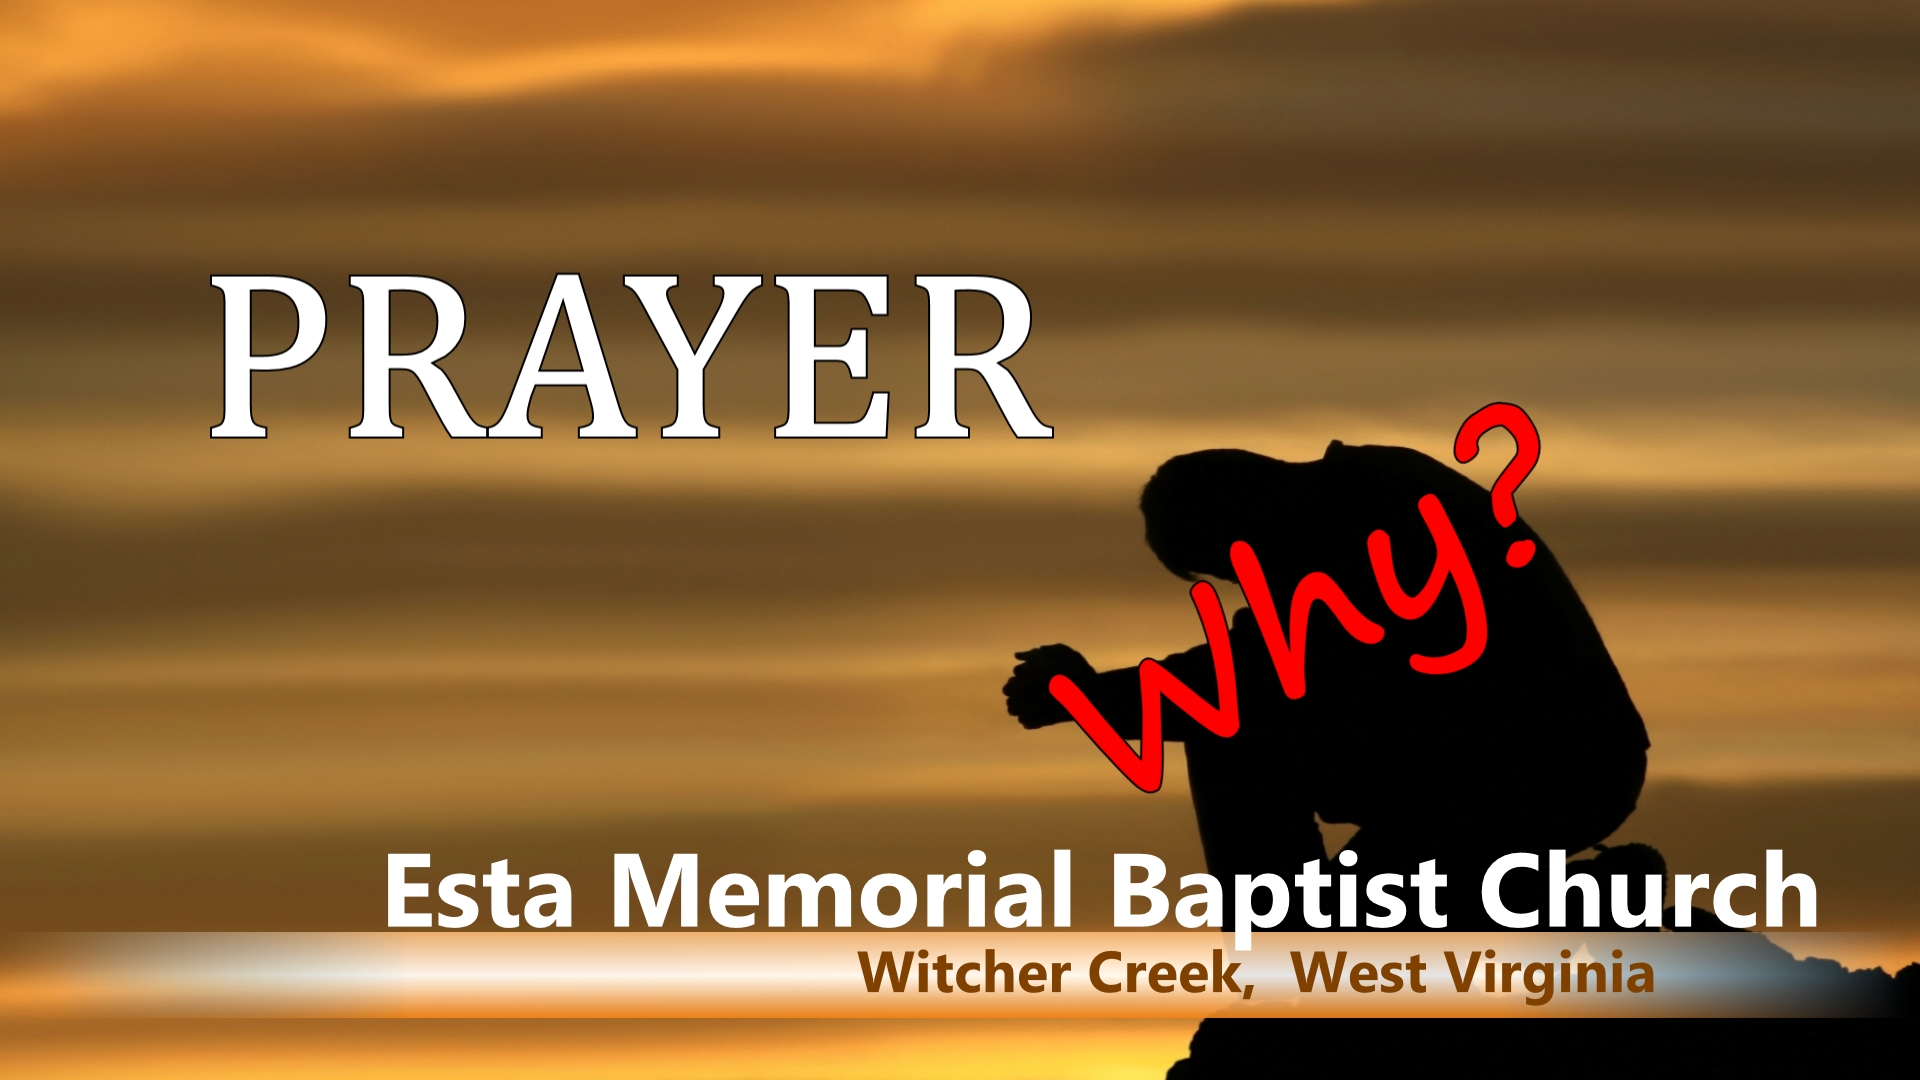 Prayer - Why?